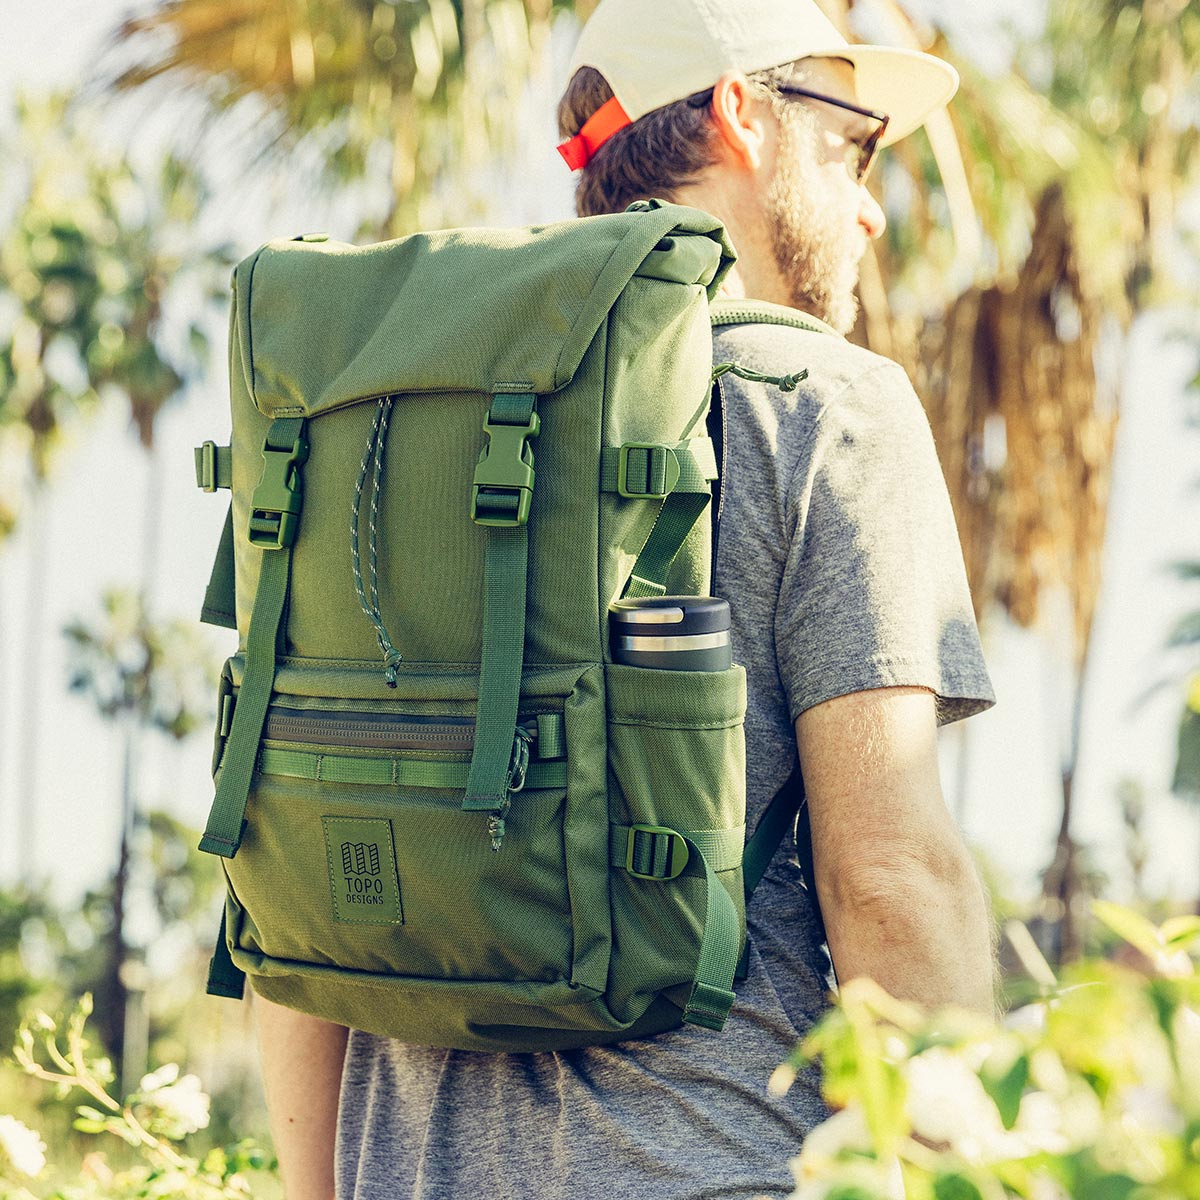 Topo Designs Rover Pack Tech Olive, technically the best backpack with great functionality